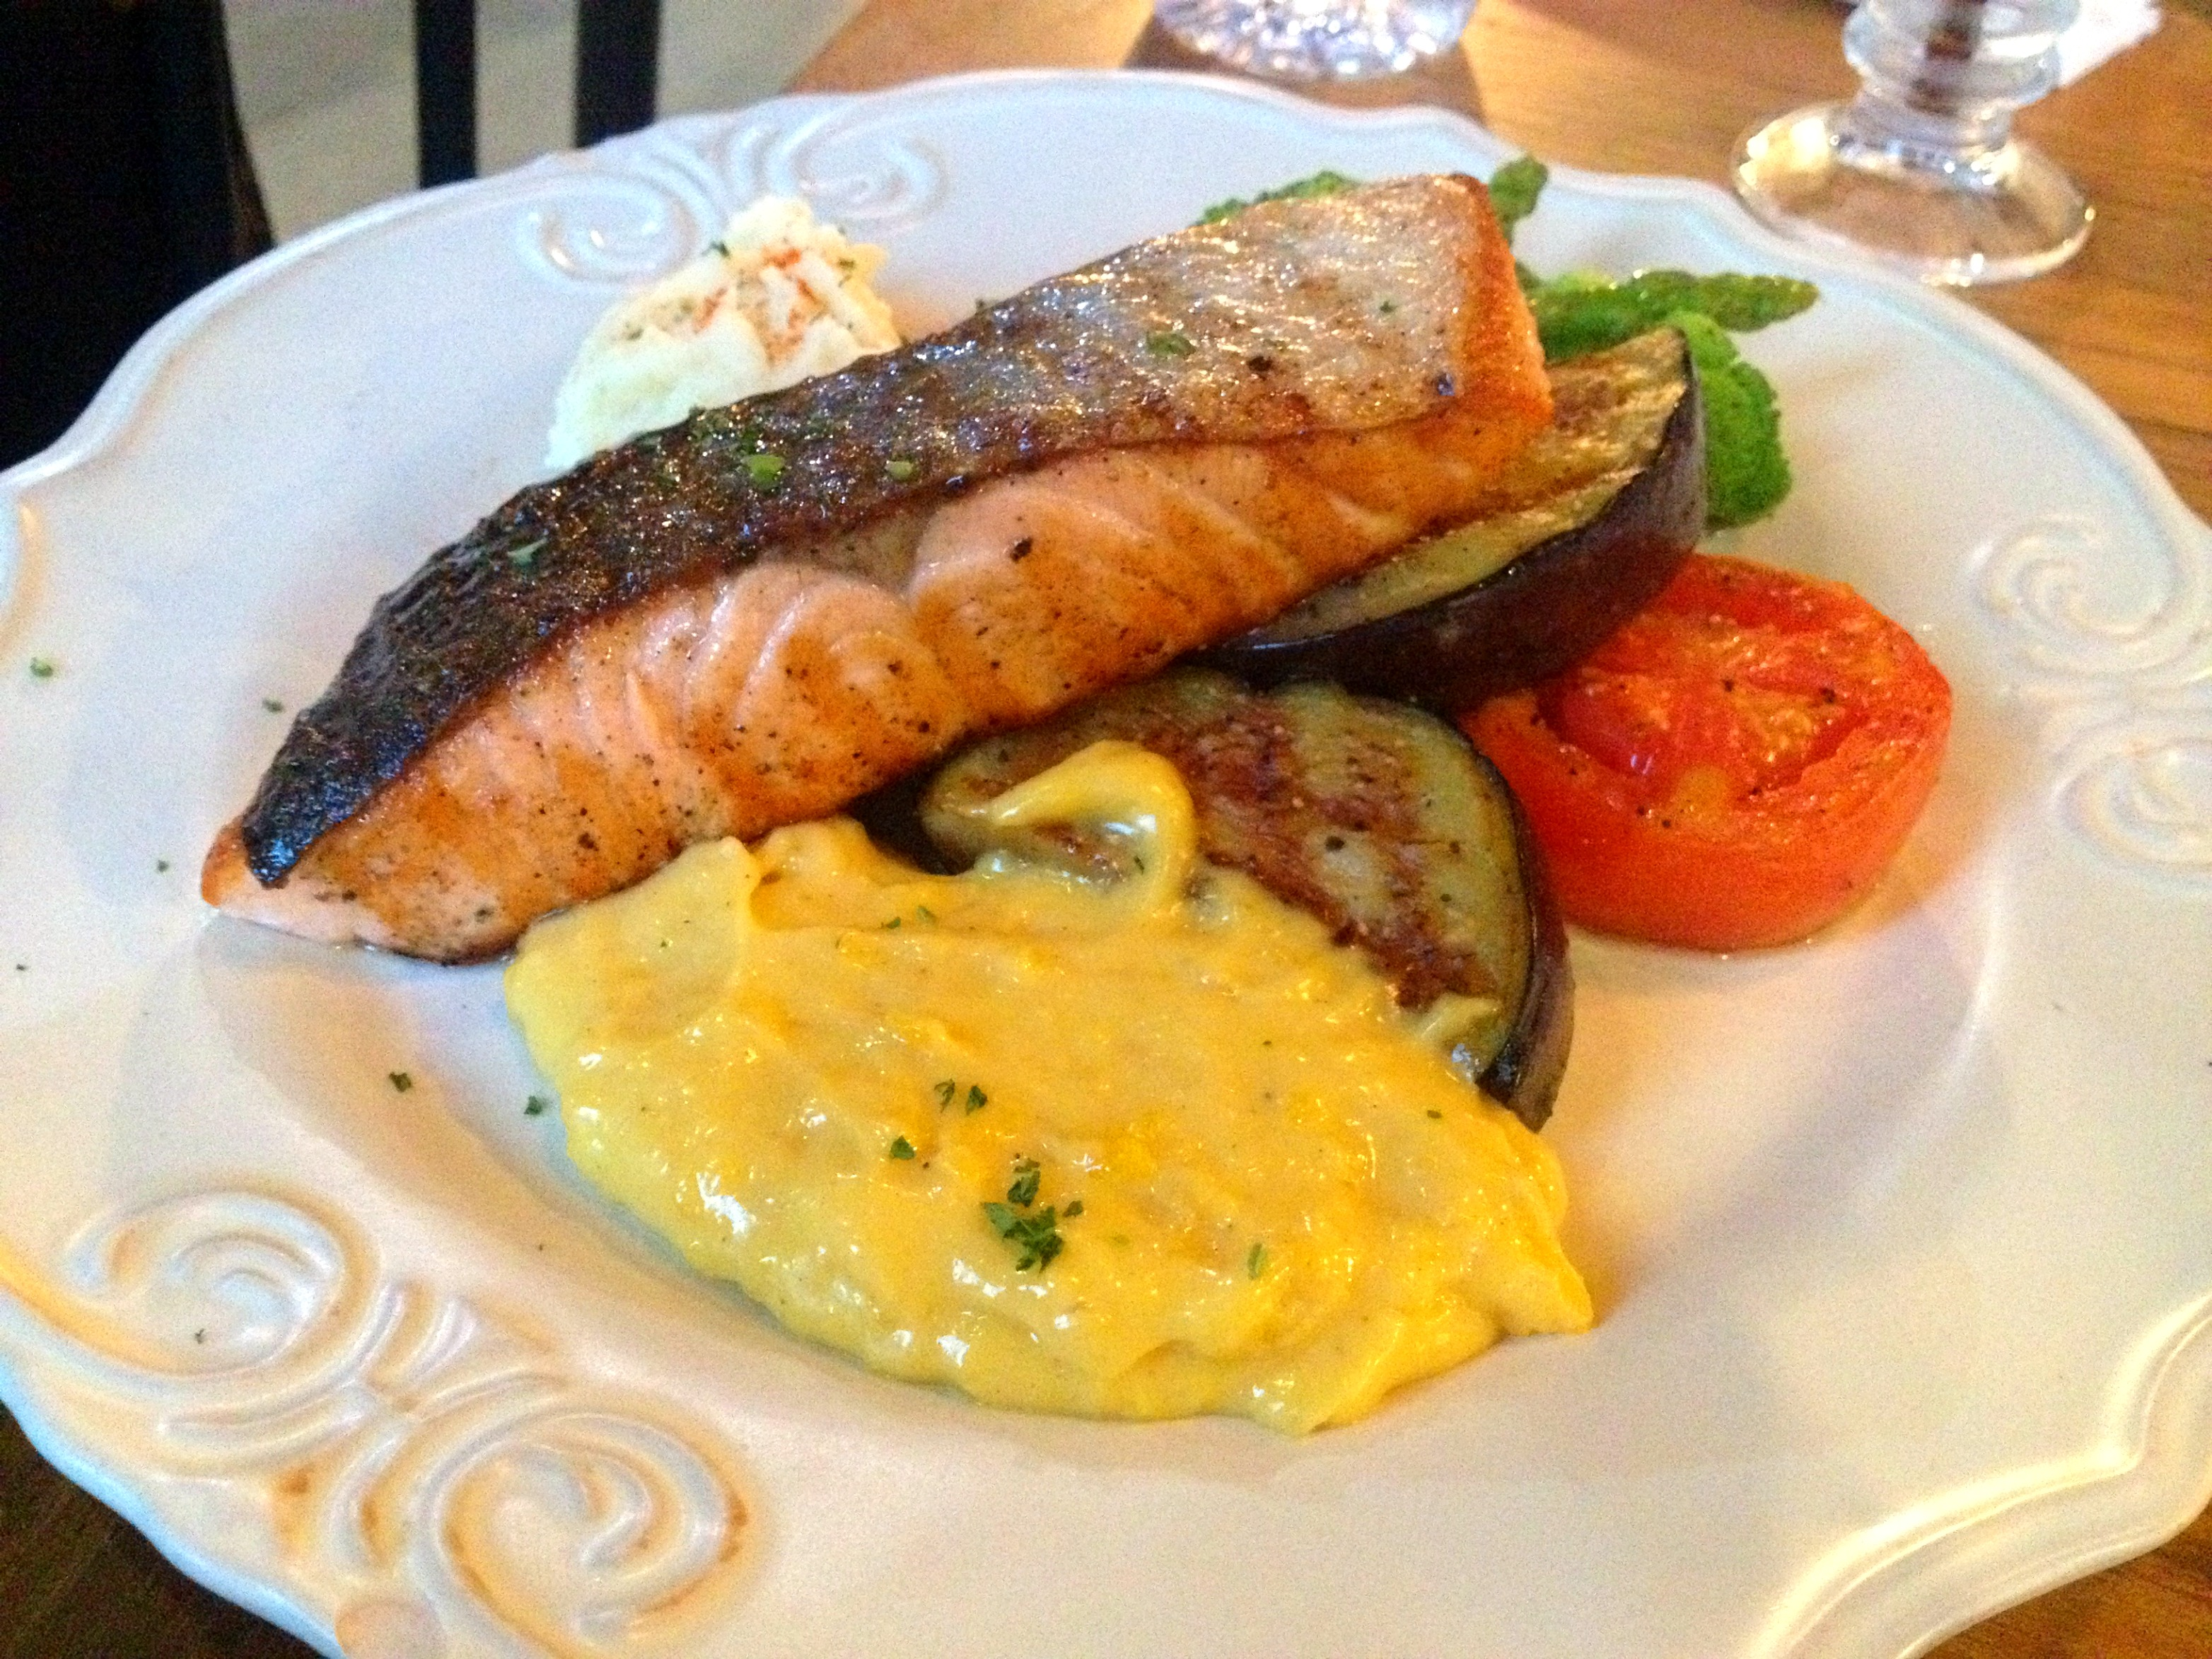 Salmon Steak Served With Mashed Potatoes And Side Vegetables At B Story Café Restaurant